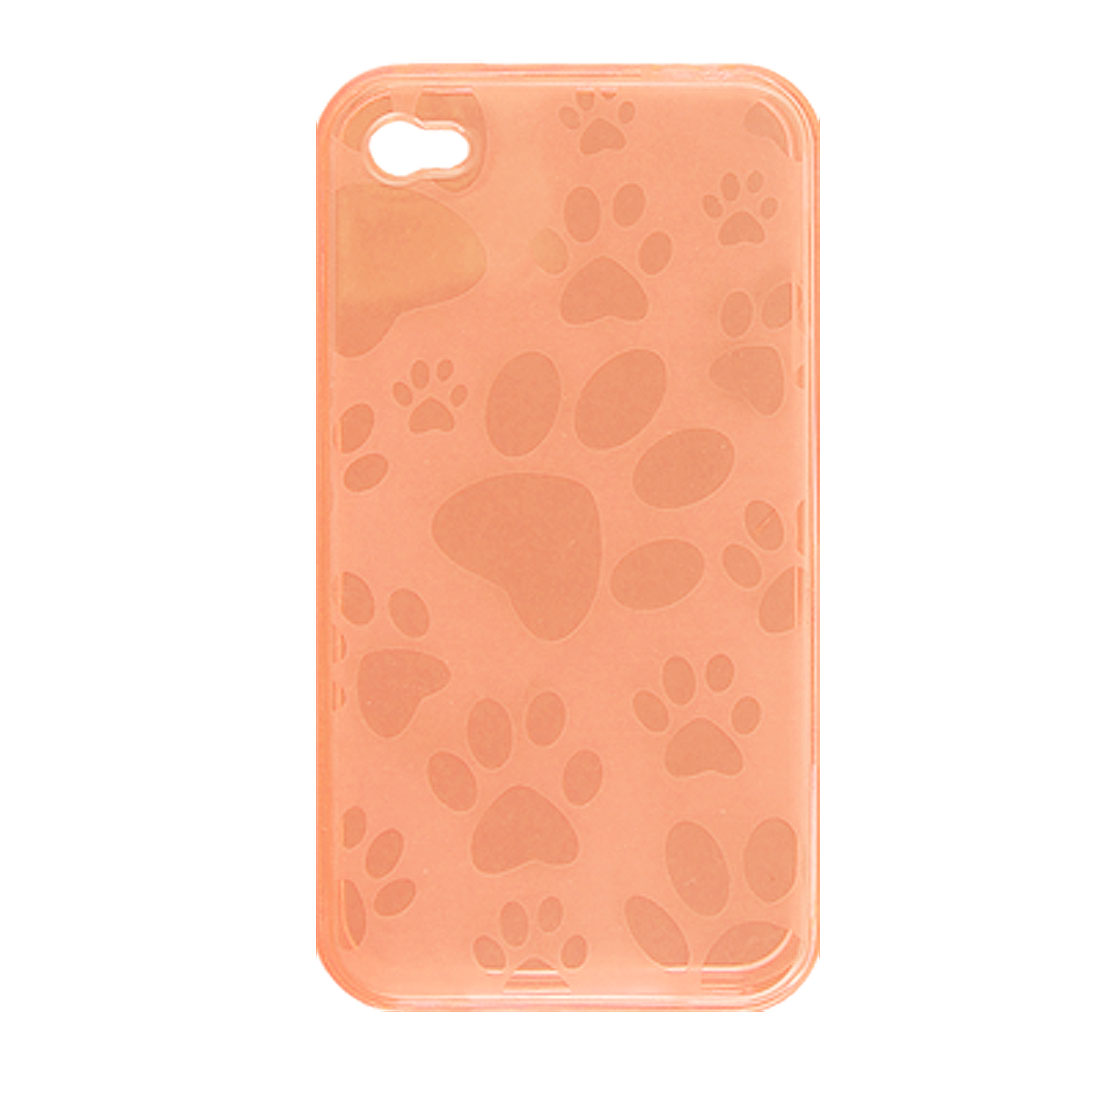 Clear Orange Red Footprints Design Soft Plastic Case for iPhone 4 4G